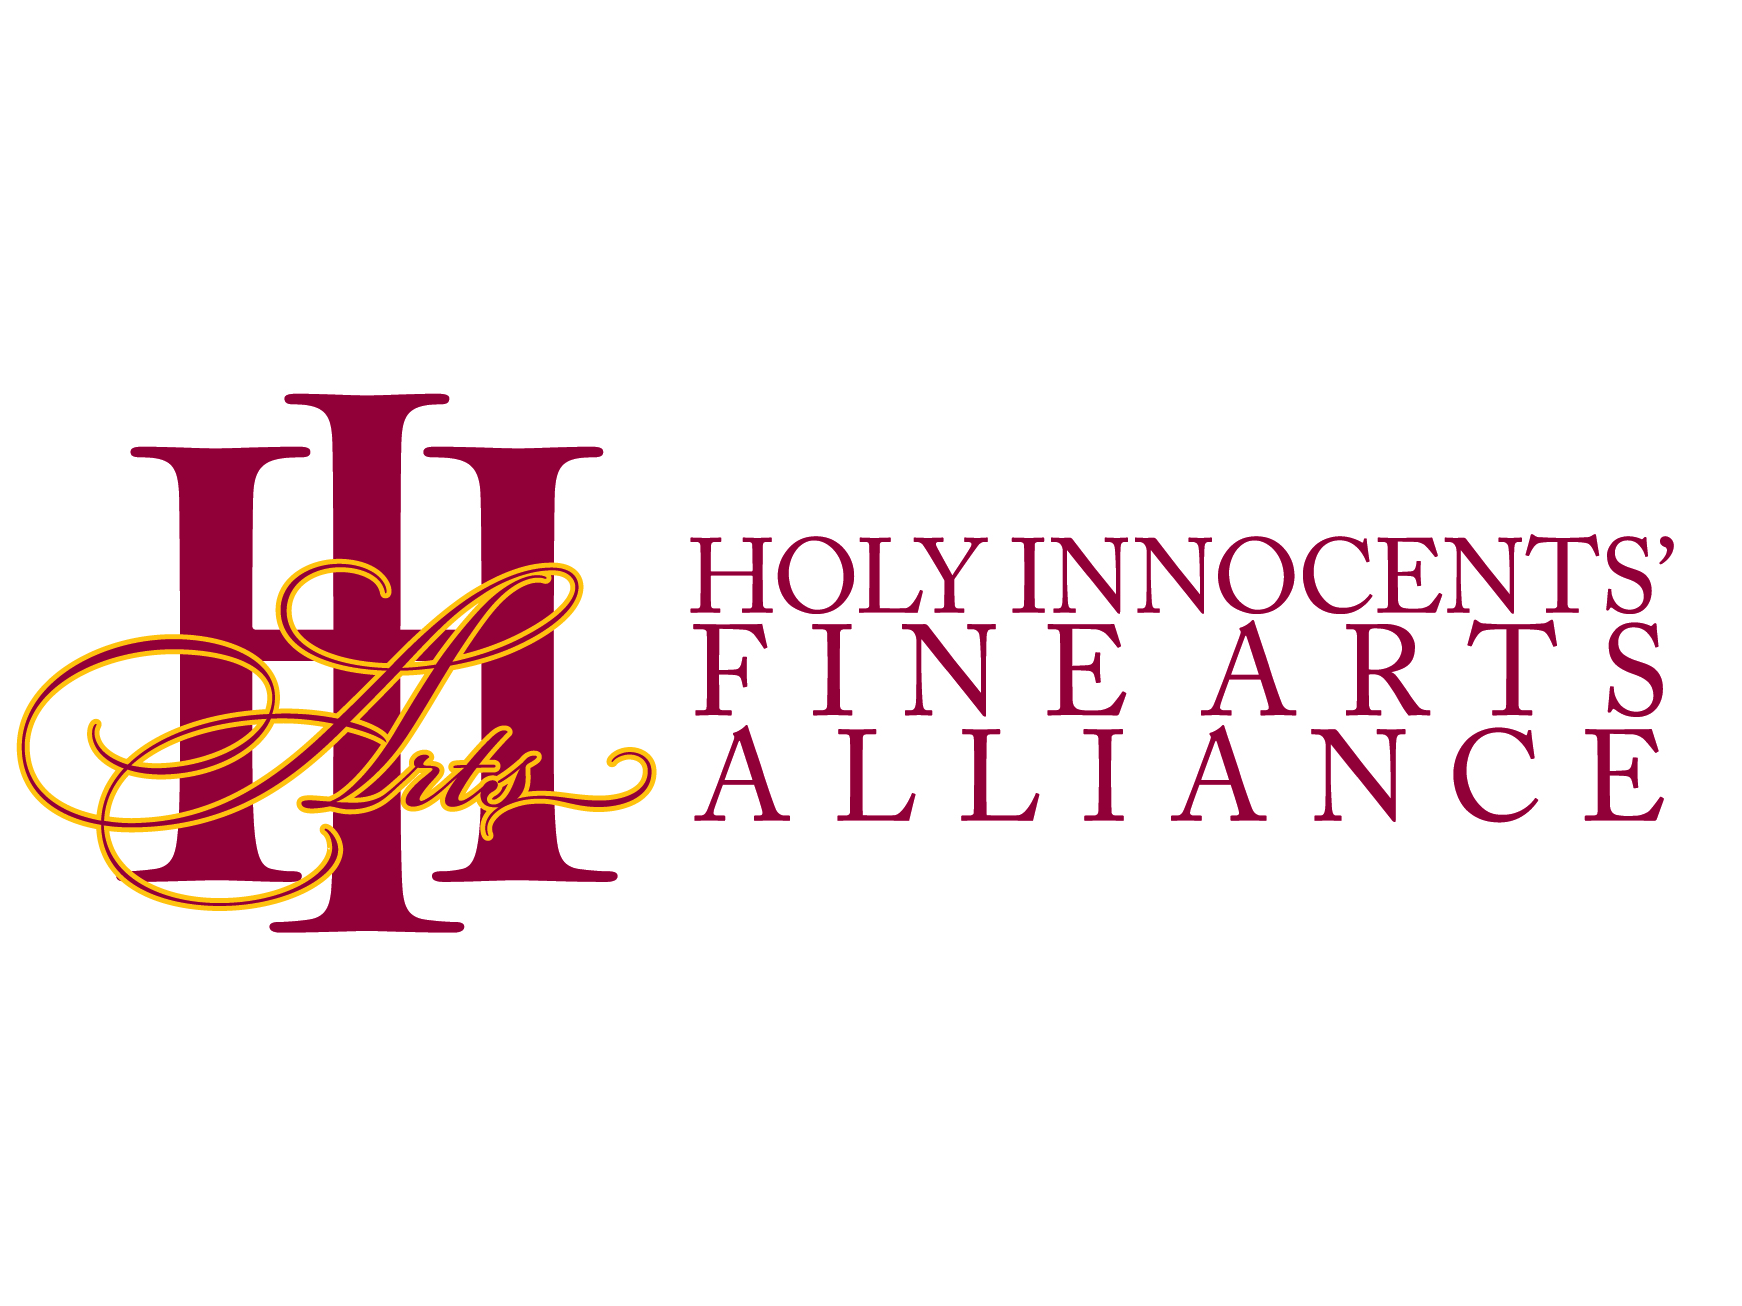 Holy Innocents (HIES) Fine Arts Alliance